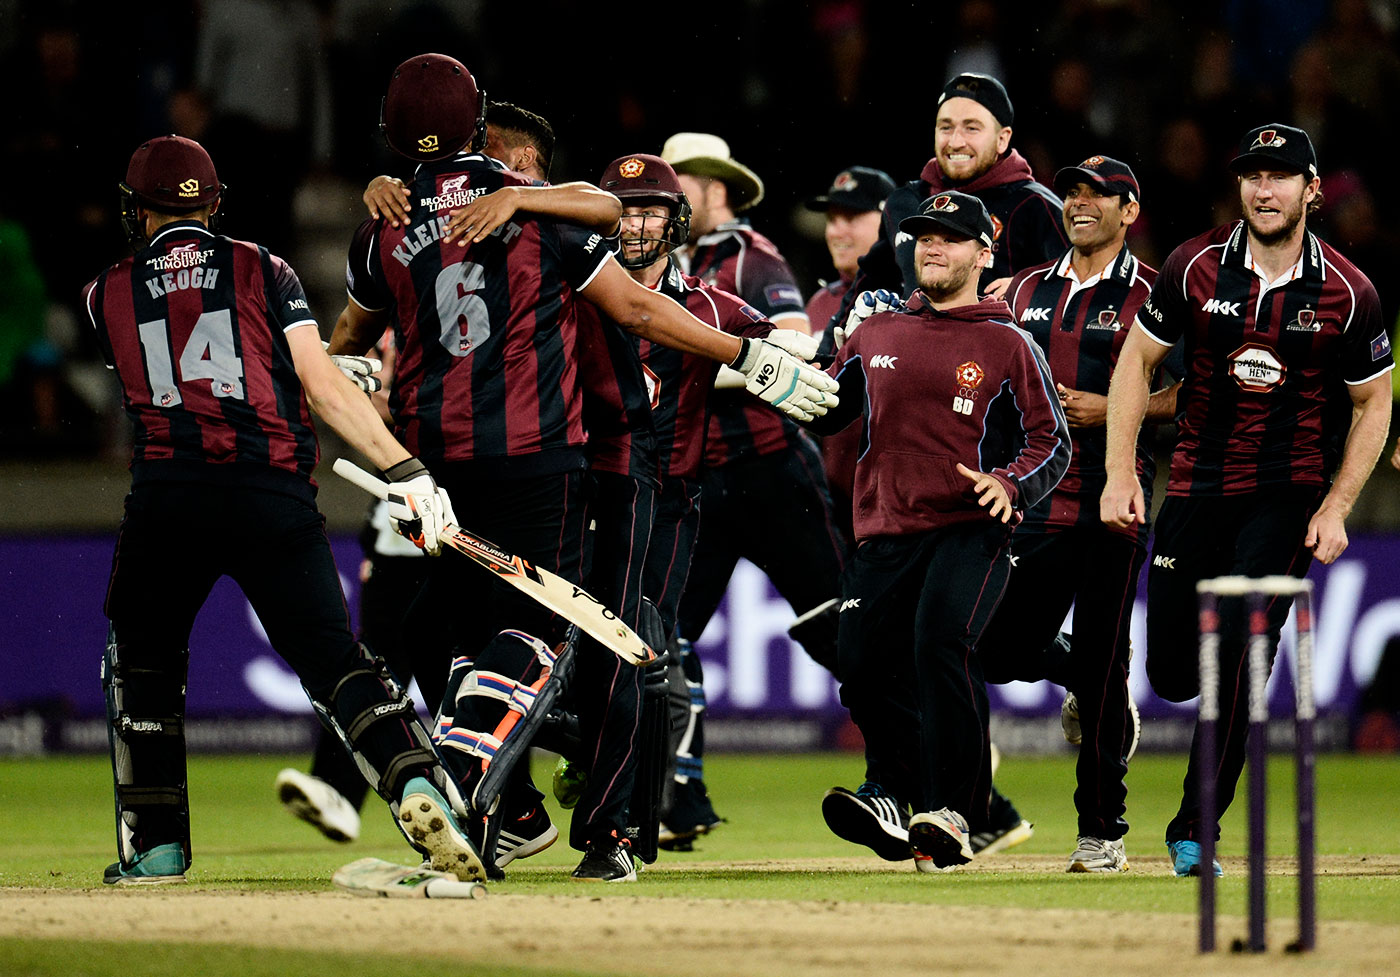 Northamptonshire have been poster boys for data-driven success in cricket